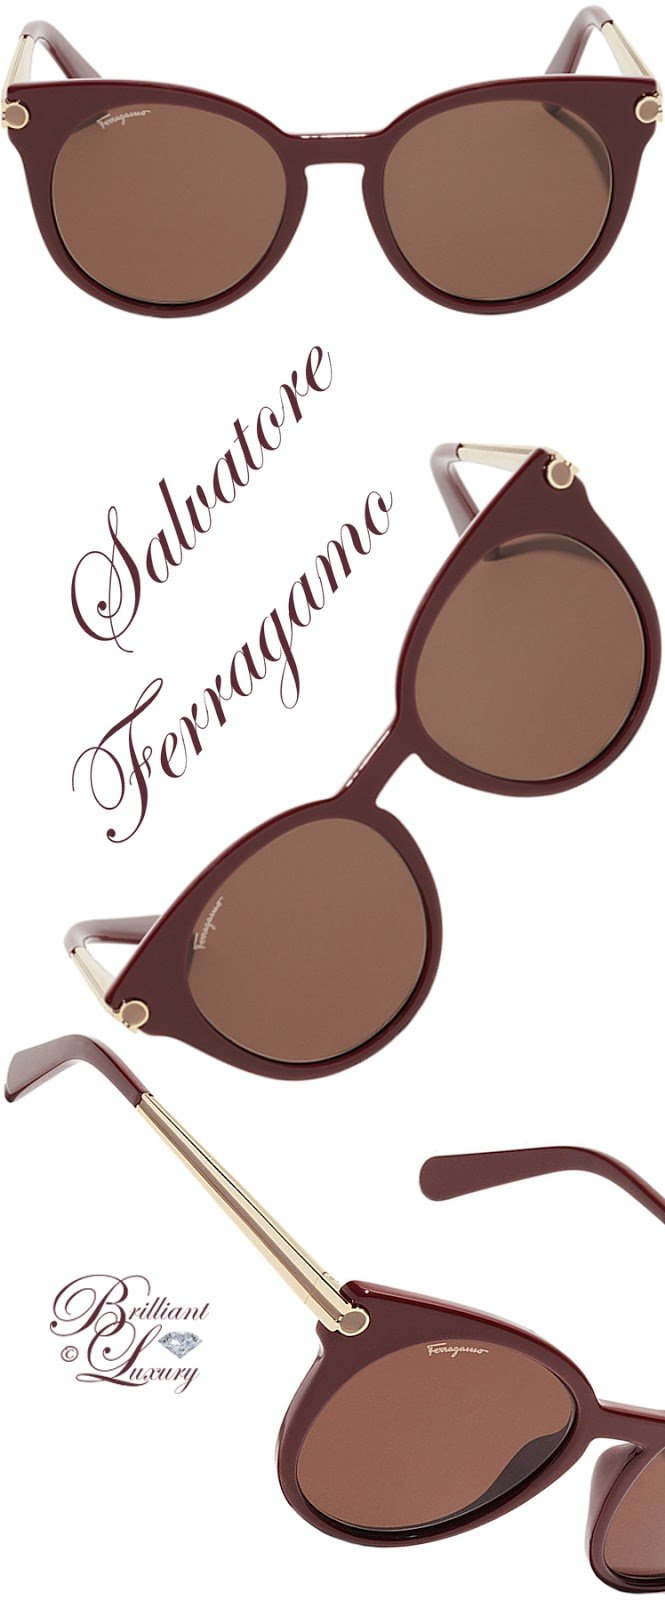 Brilliant Luxury ♦ Salvatore Ferragamo Sunglasses